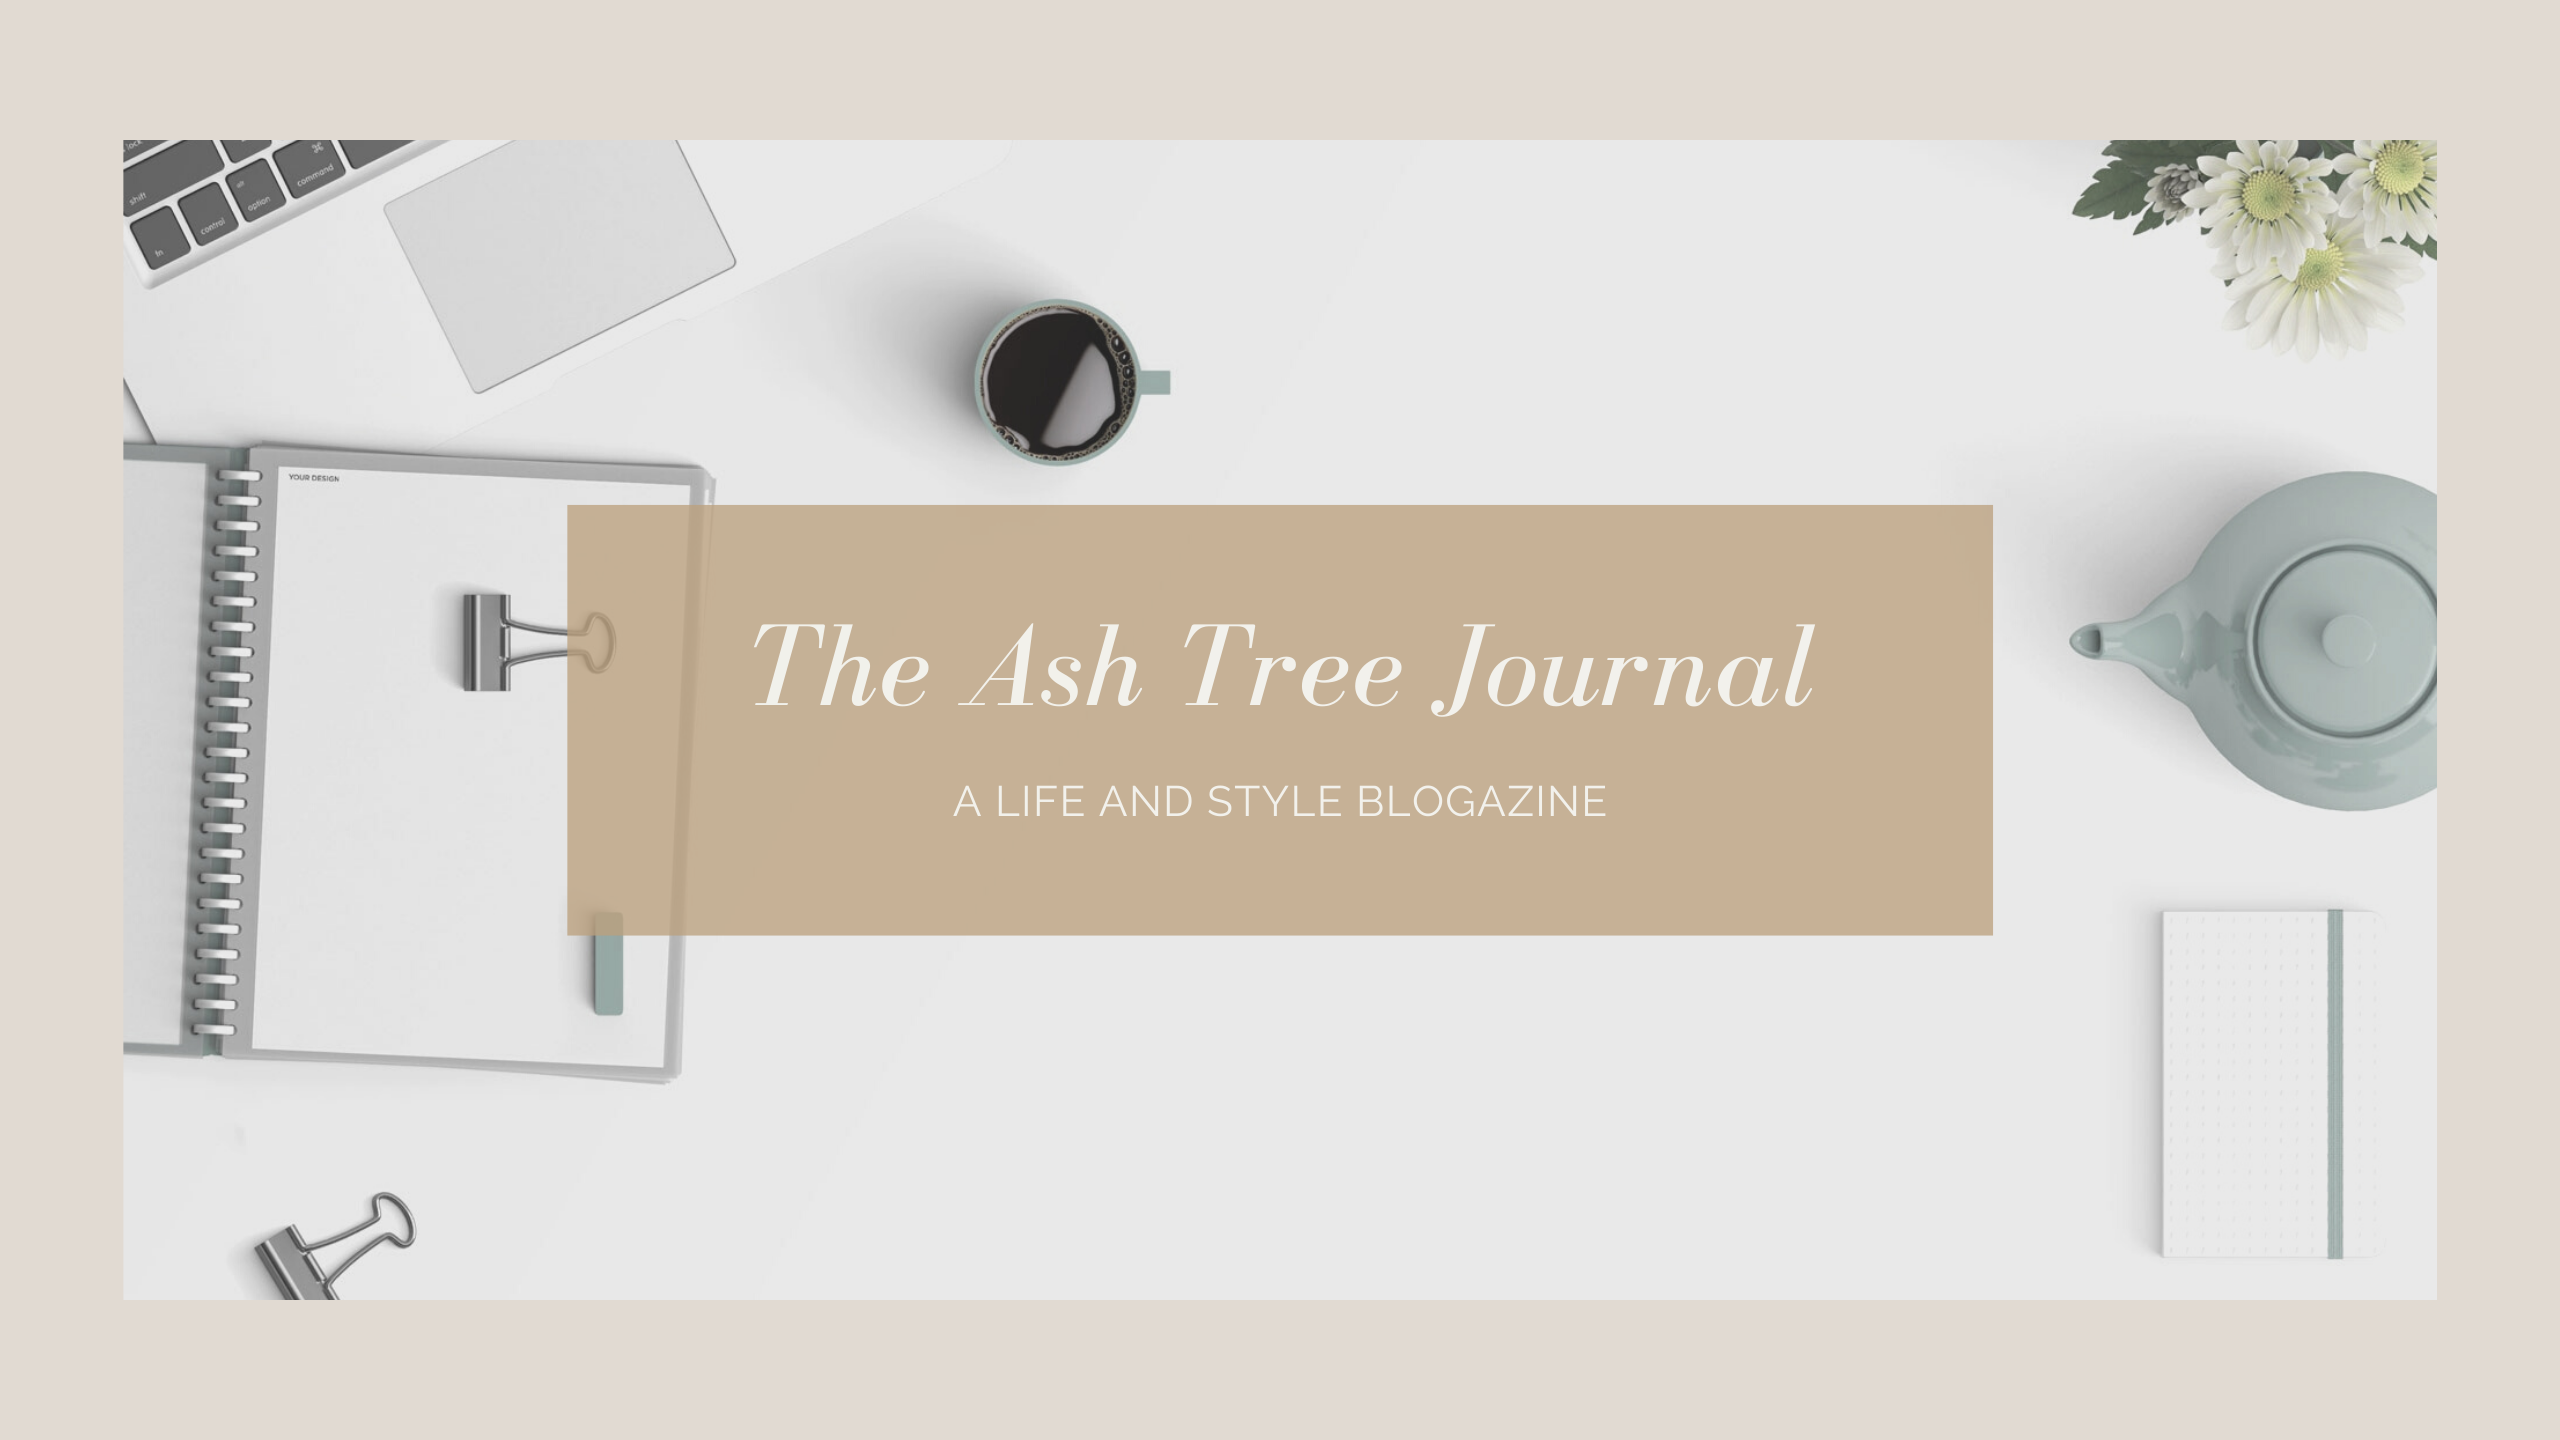 THE ASH TREE JOURNAL COM LOGO HOMEPAGE THEASHTREEJOURNAL